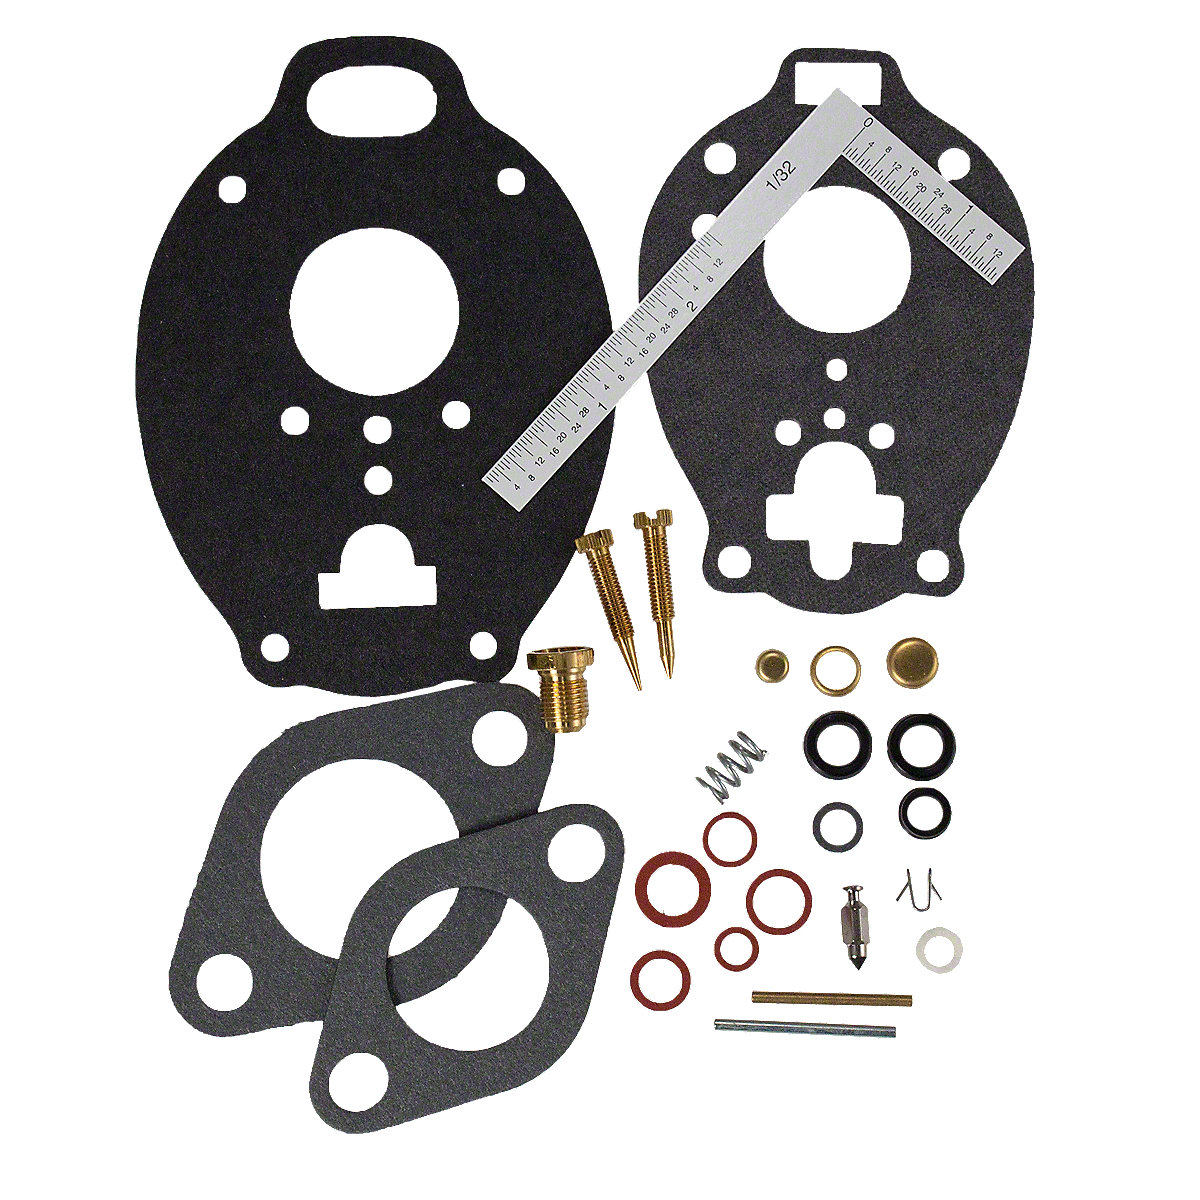 ABC220 Economy Carburetor Repair Kit, Marvel Schebler